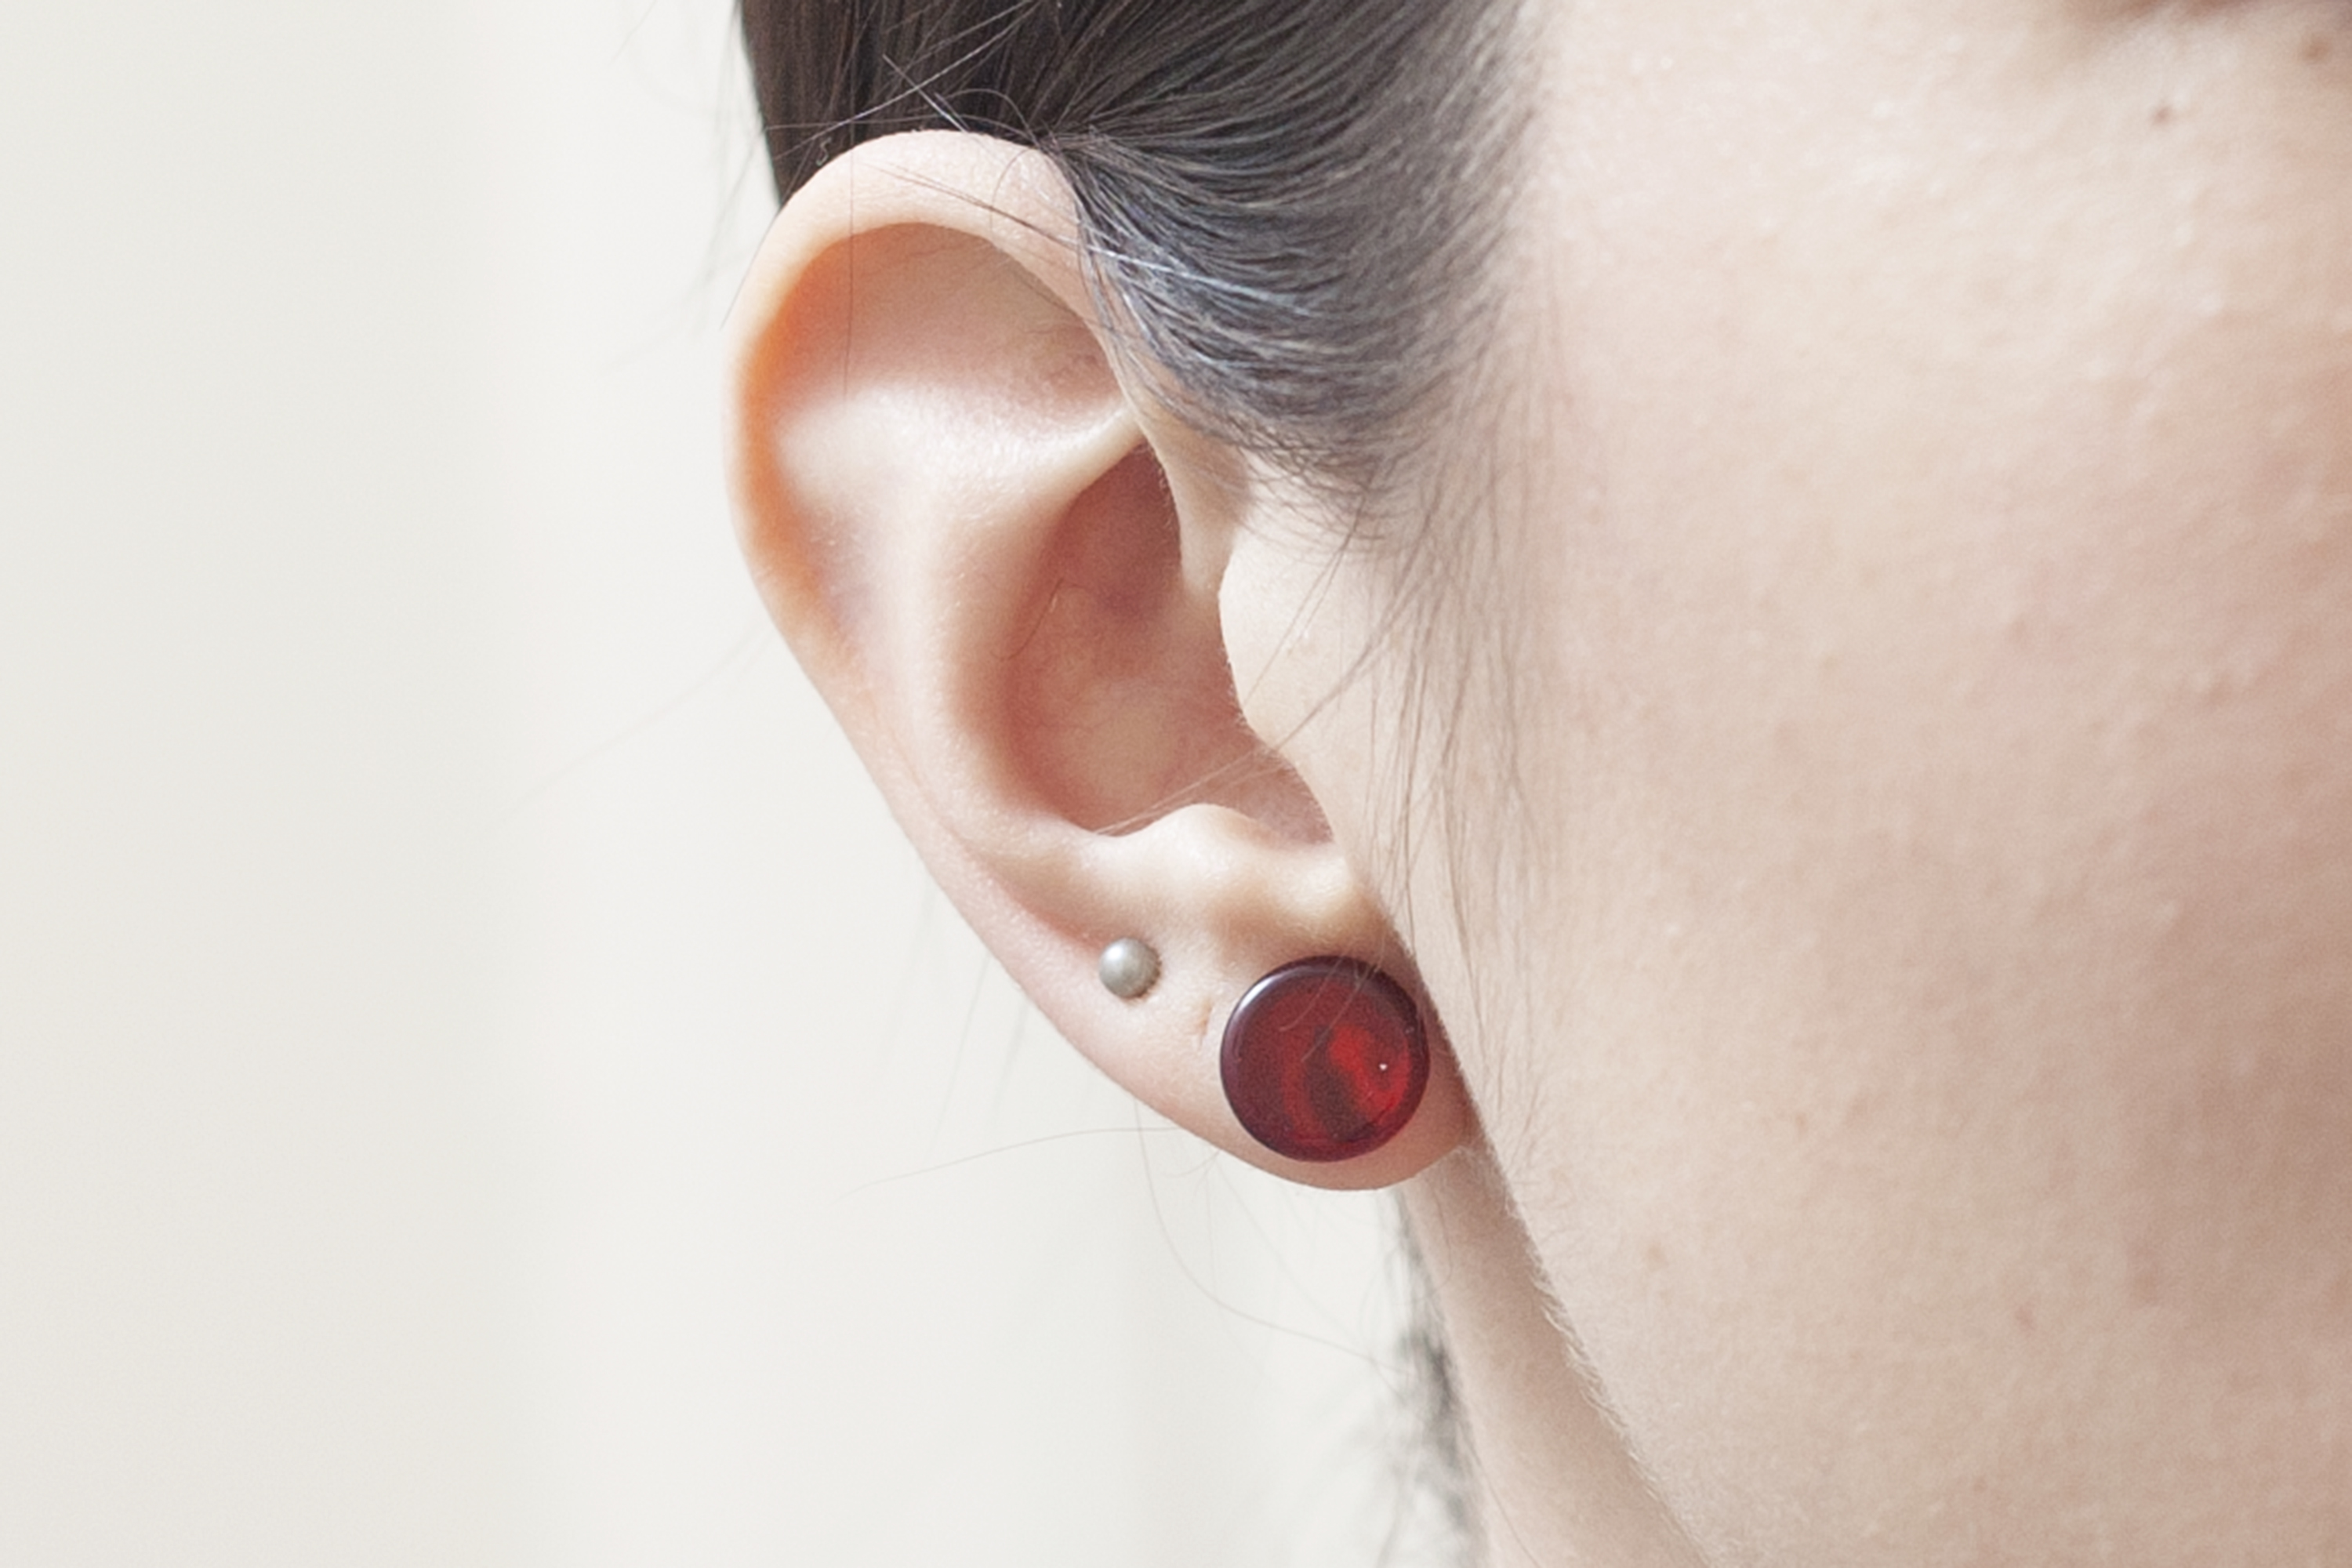 How To Remove Pierced Earrings From Your Ear Our Everyday Life